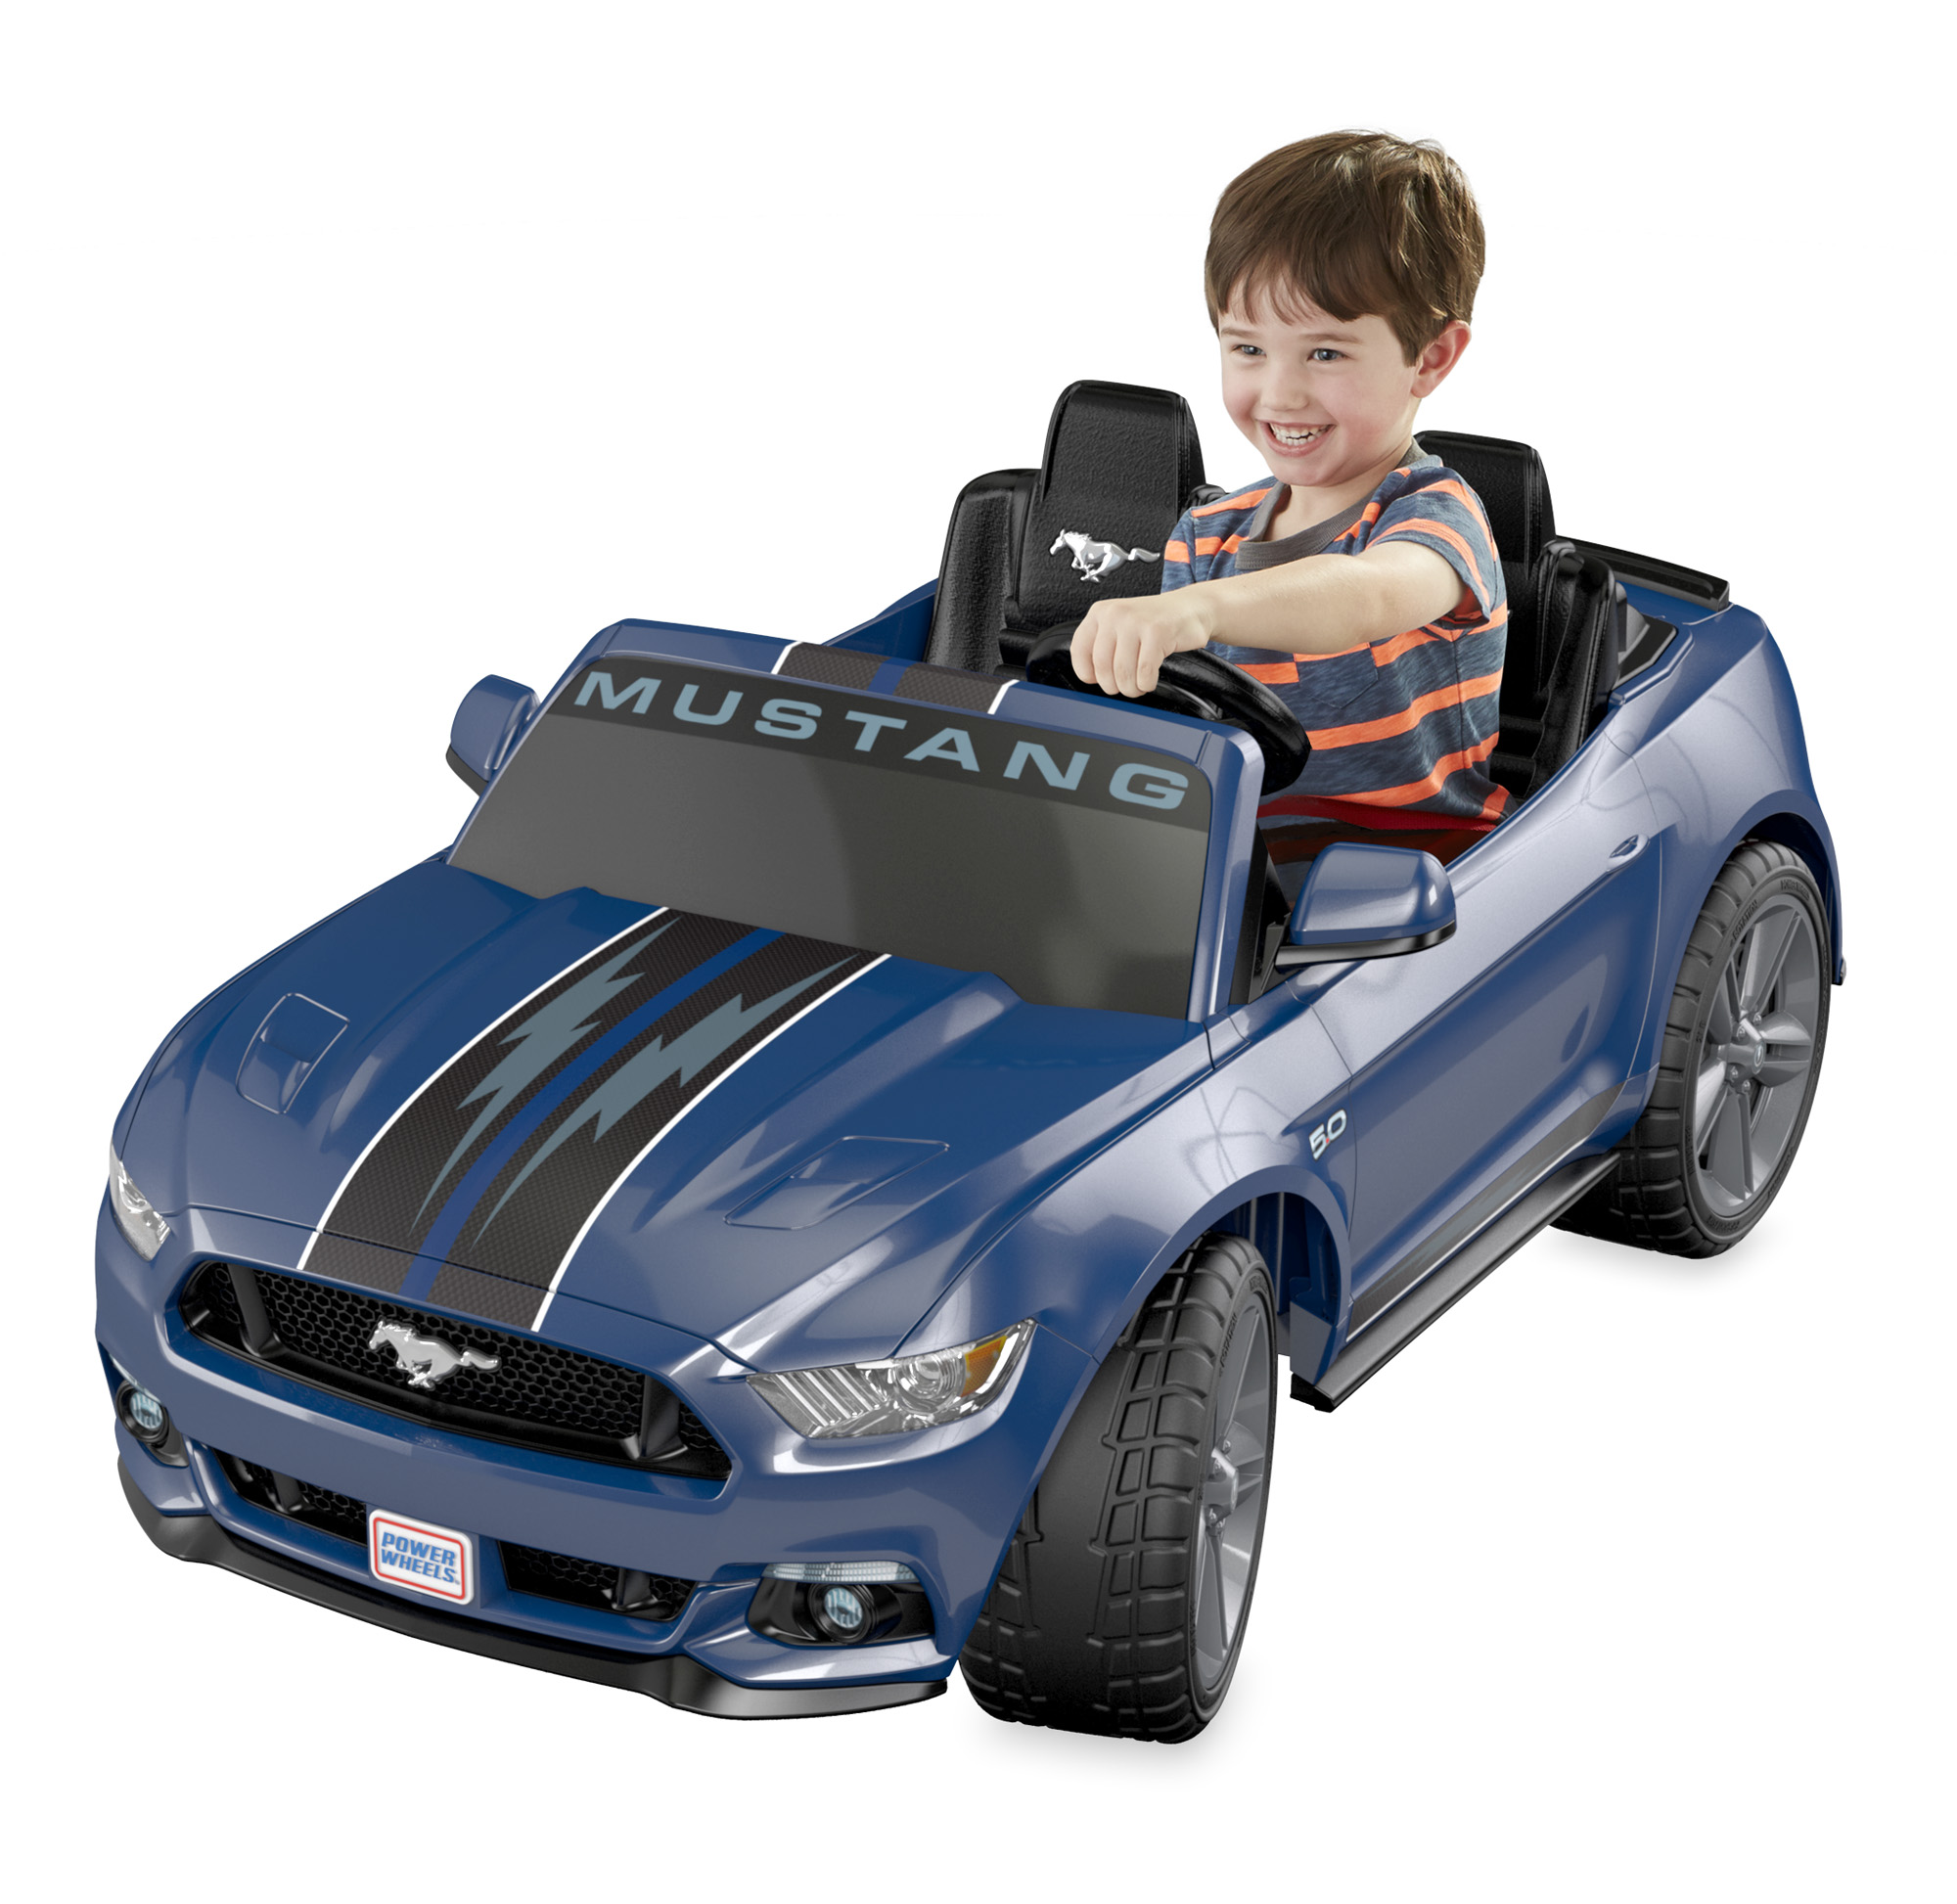 Toy Cars for Kids to Drive Lovely Power Wheels Smart Drive ford Mustang Walmart